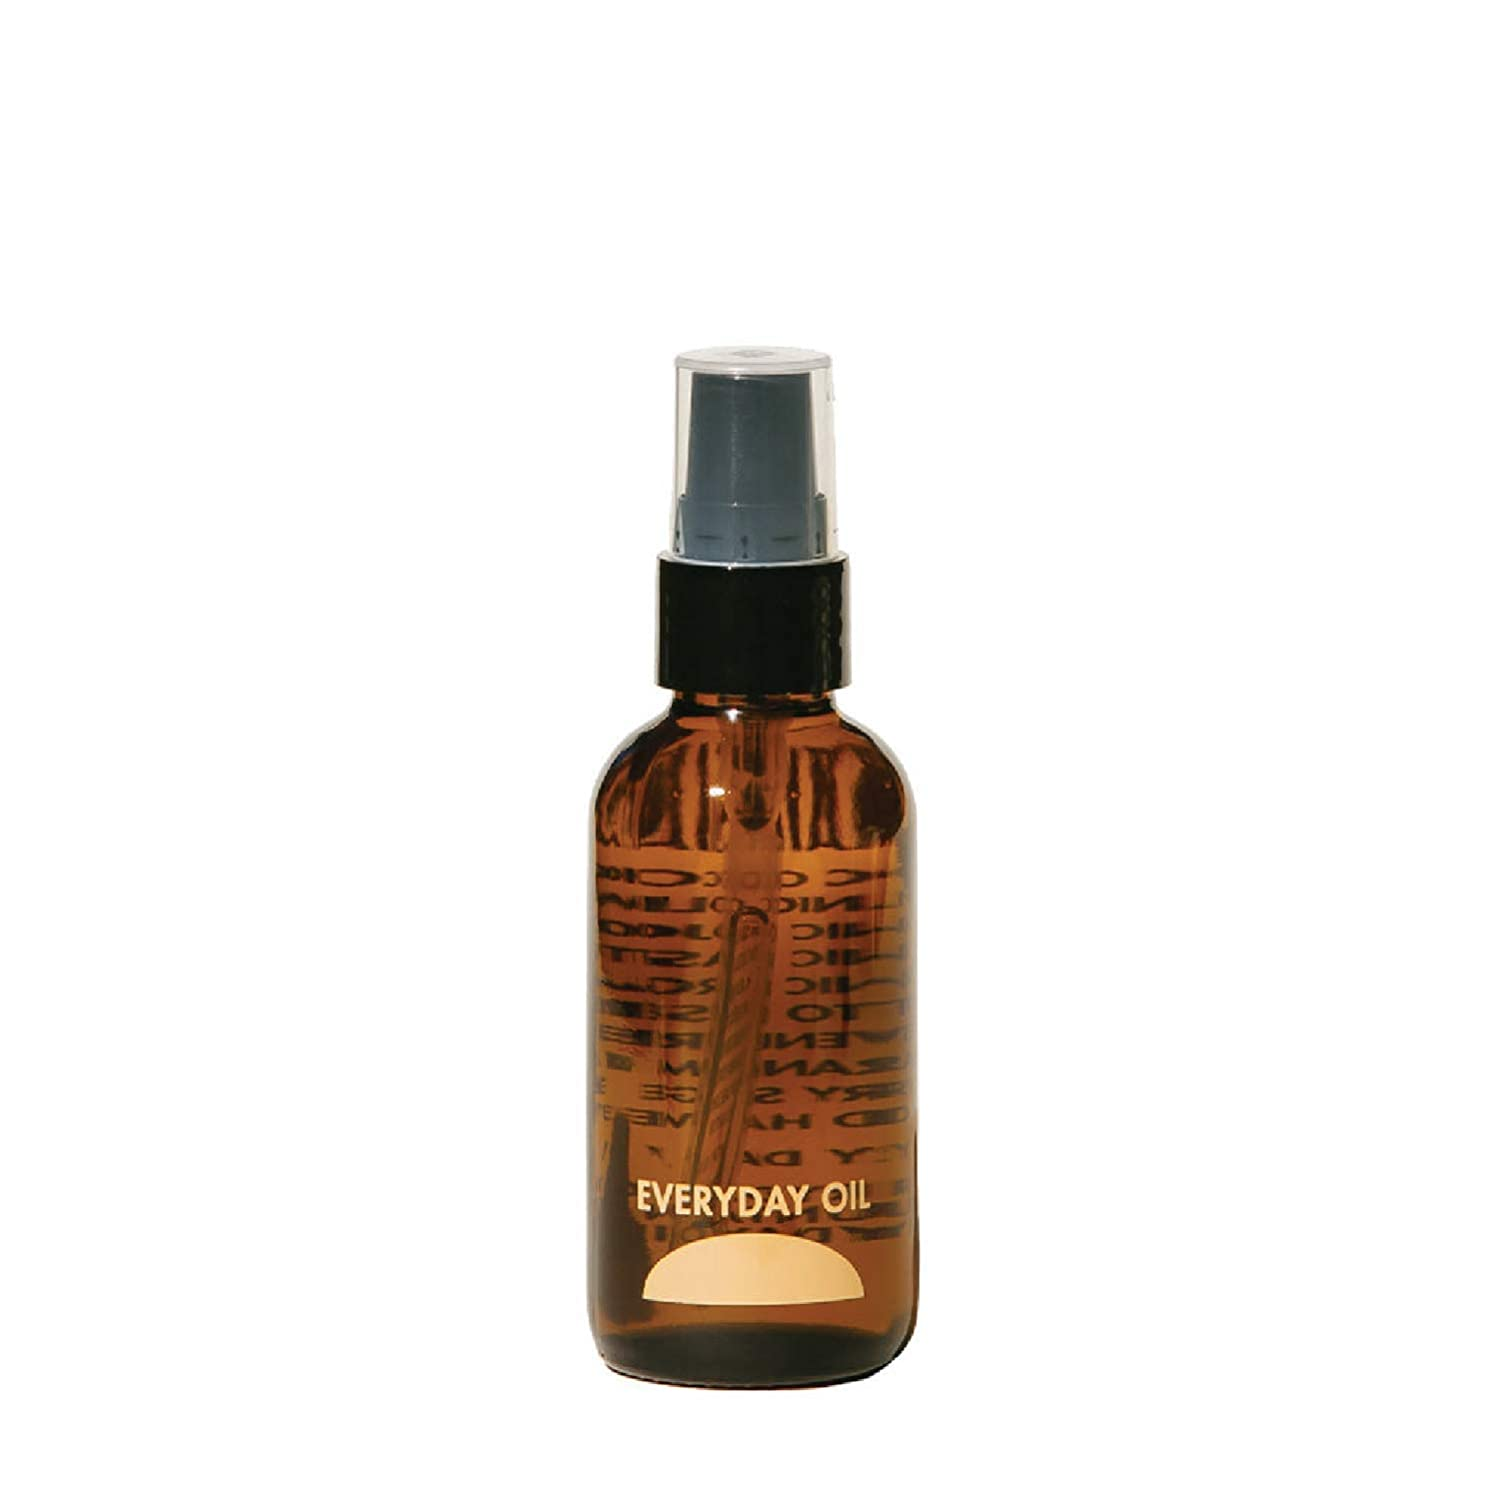 Everyday Oil Mainstay Blend, Face + Body Oil, Cleansing, Balancing, Hydrating, 2 oz.